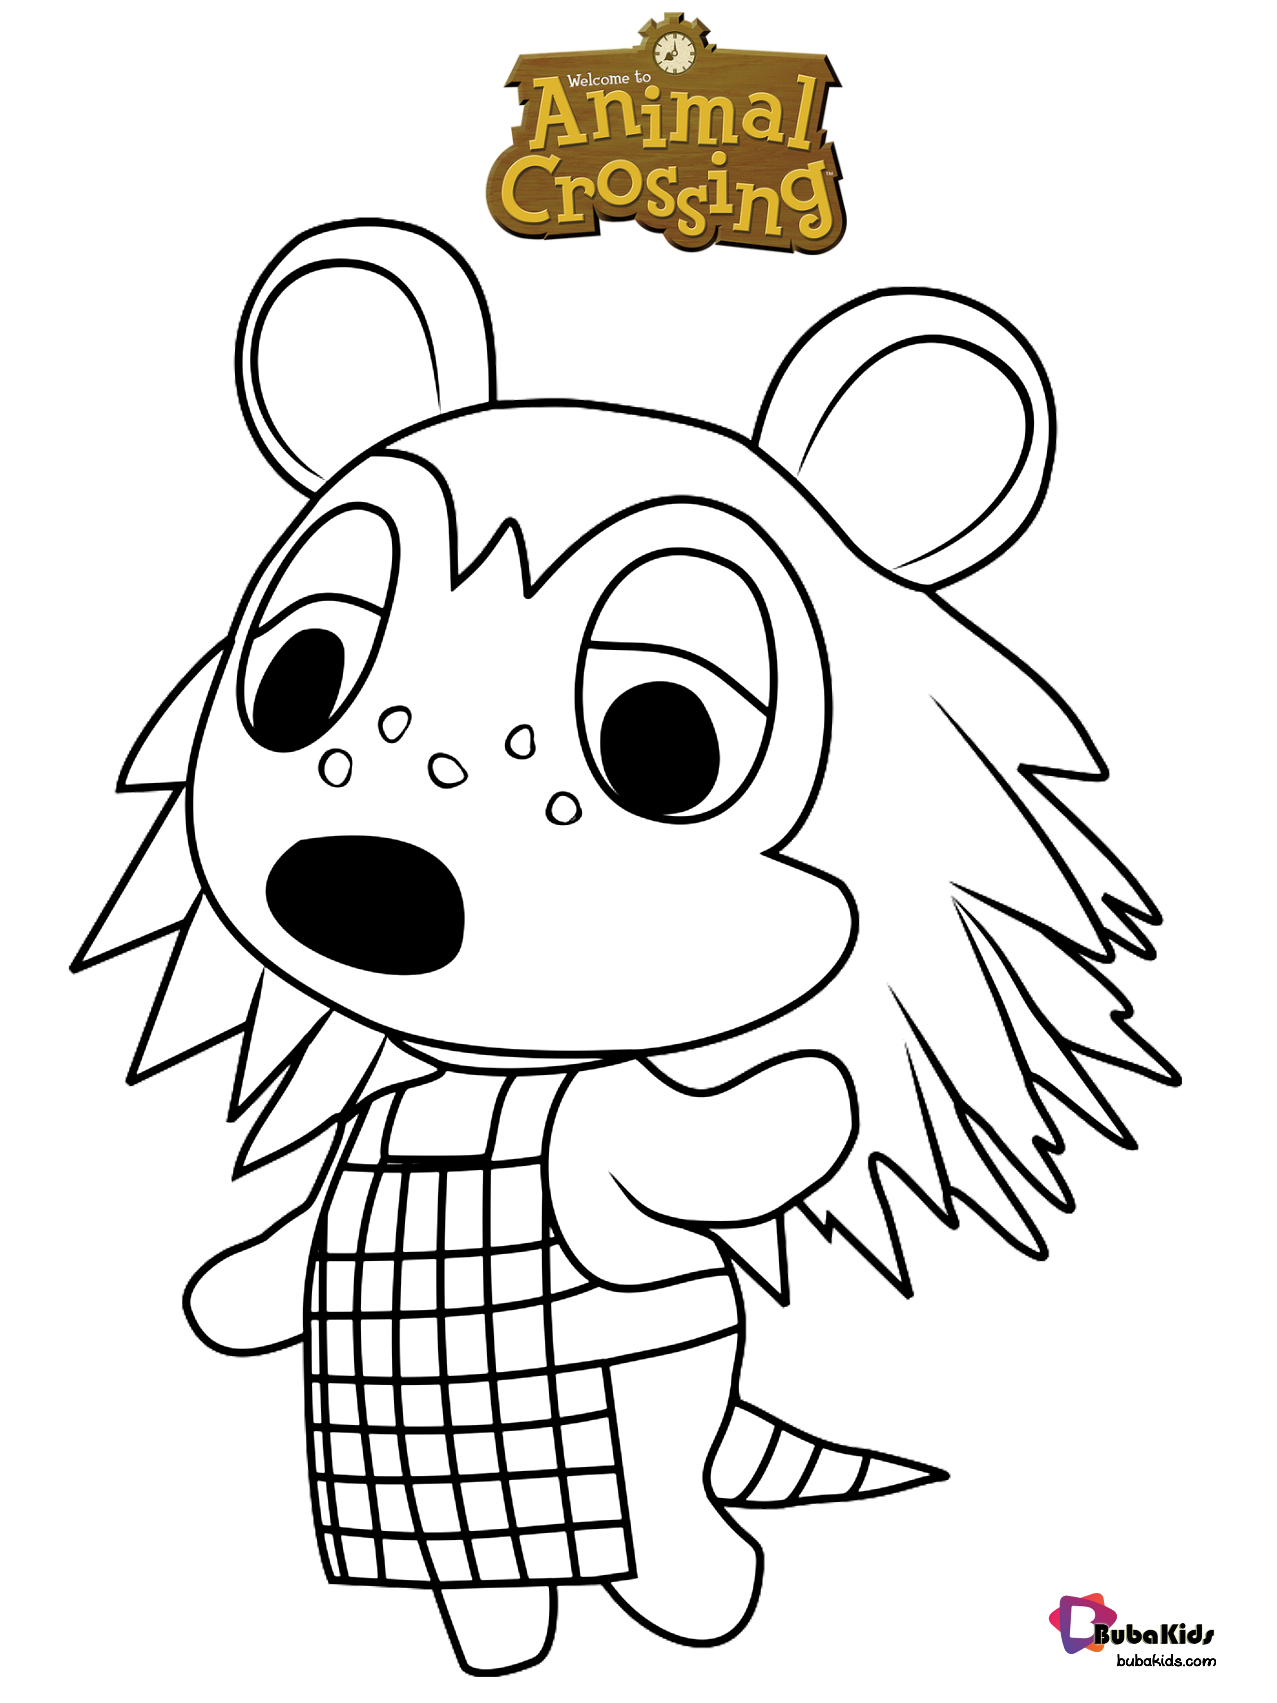 Printable Animal Crossing Coloring Pages : printable, animal, crossing, coloring, pages, Download, Print, Sable, Animal, Crossing, Coloring, Collection, Cartoon, Color…, Pages,